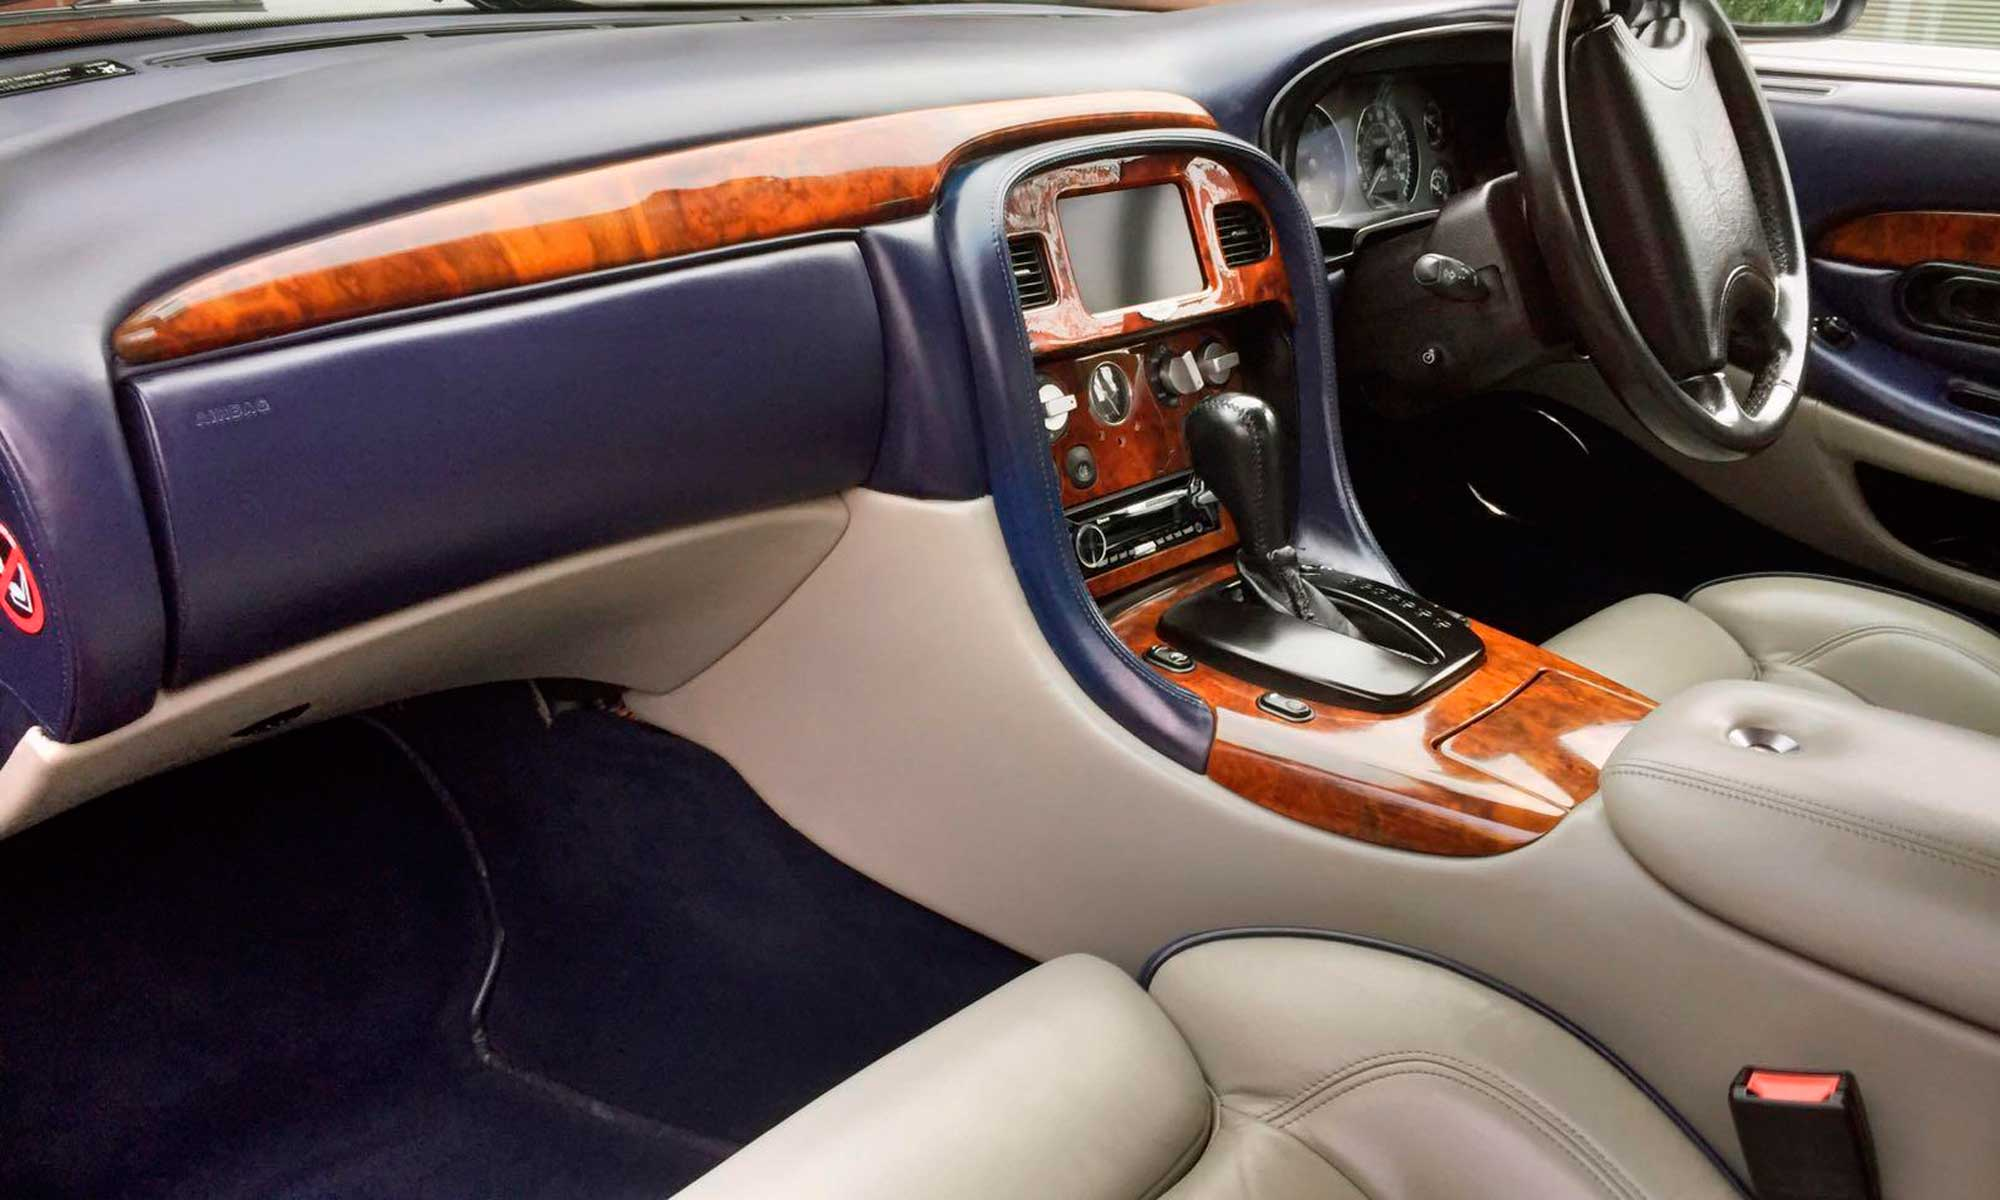 Aston Martin Rental in the north of England: Vantage interior